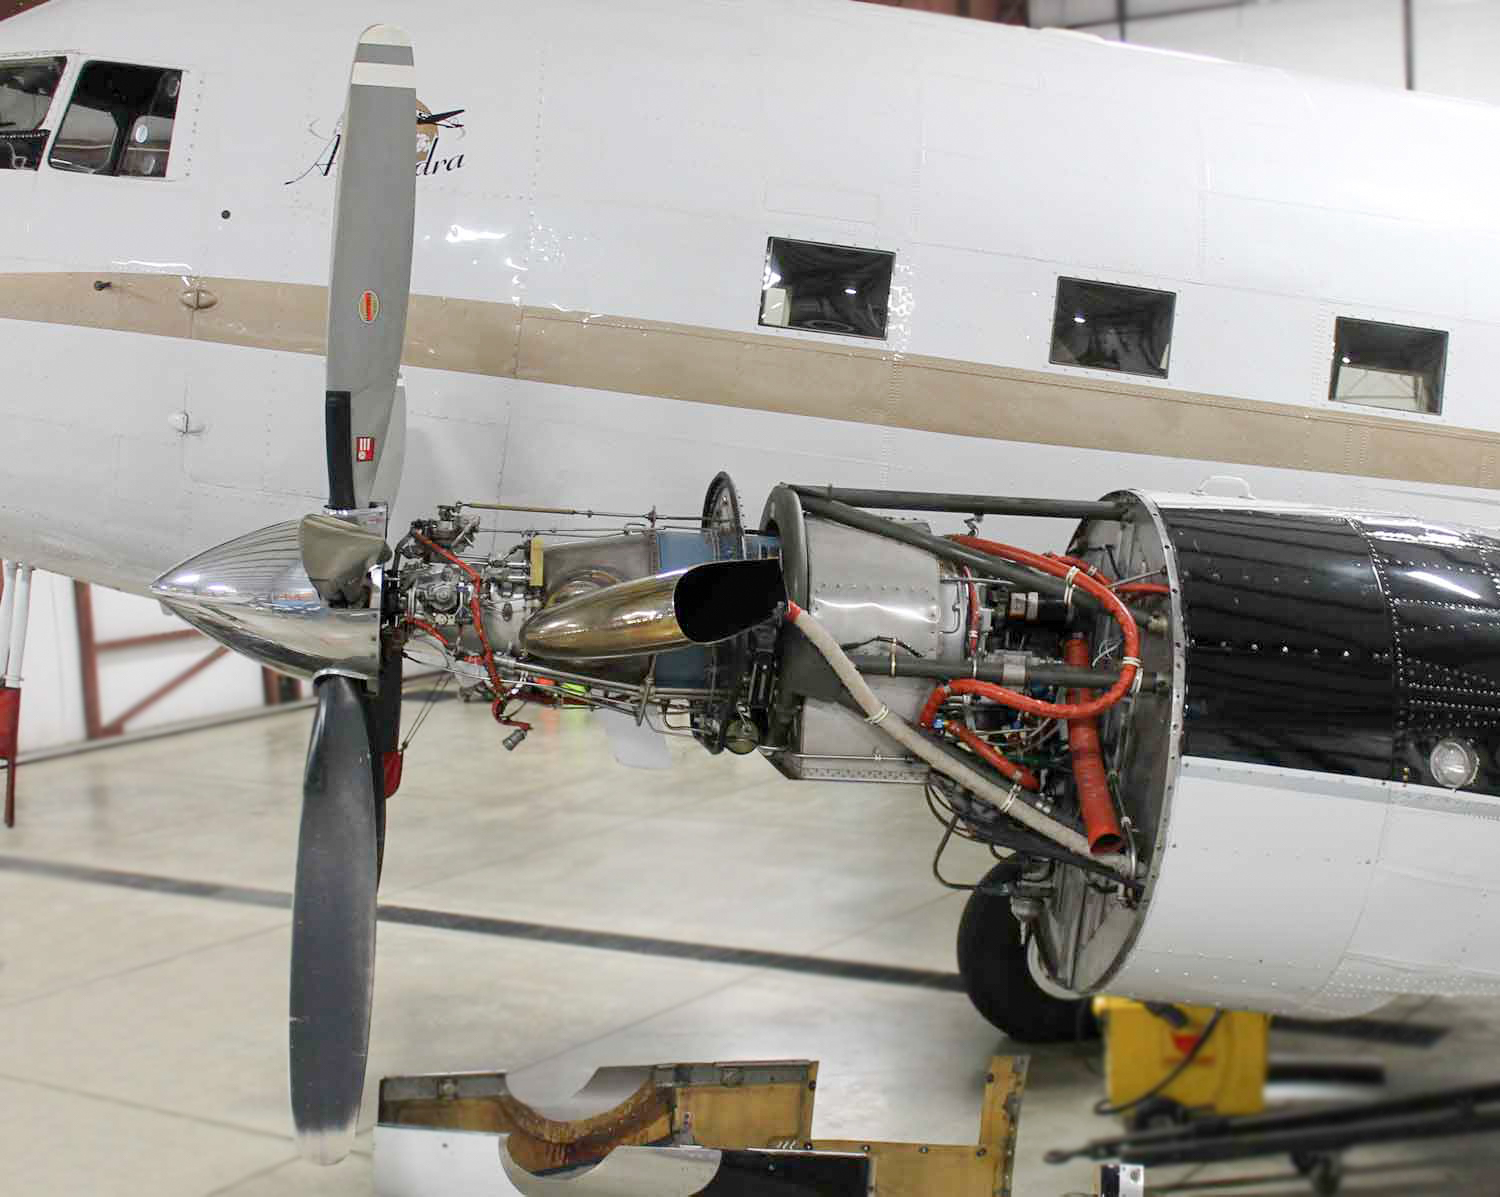 Douglas Dc 3 Conversion Details Preferred Turbine Aircraft Wiring Harness Mounting Hardware A New Main Fuel Tank With 116 Gallon Capacity Is Mounted Forward Of The Firewall Additional Tanks Increase Total To 1032 Gallons